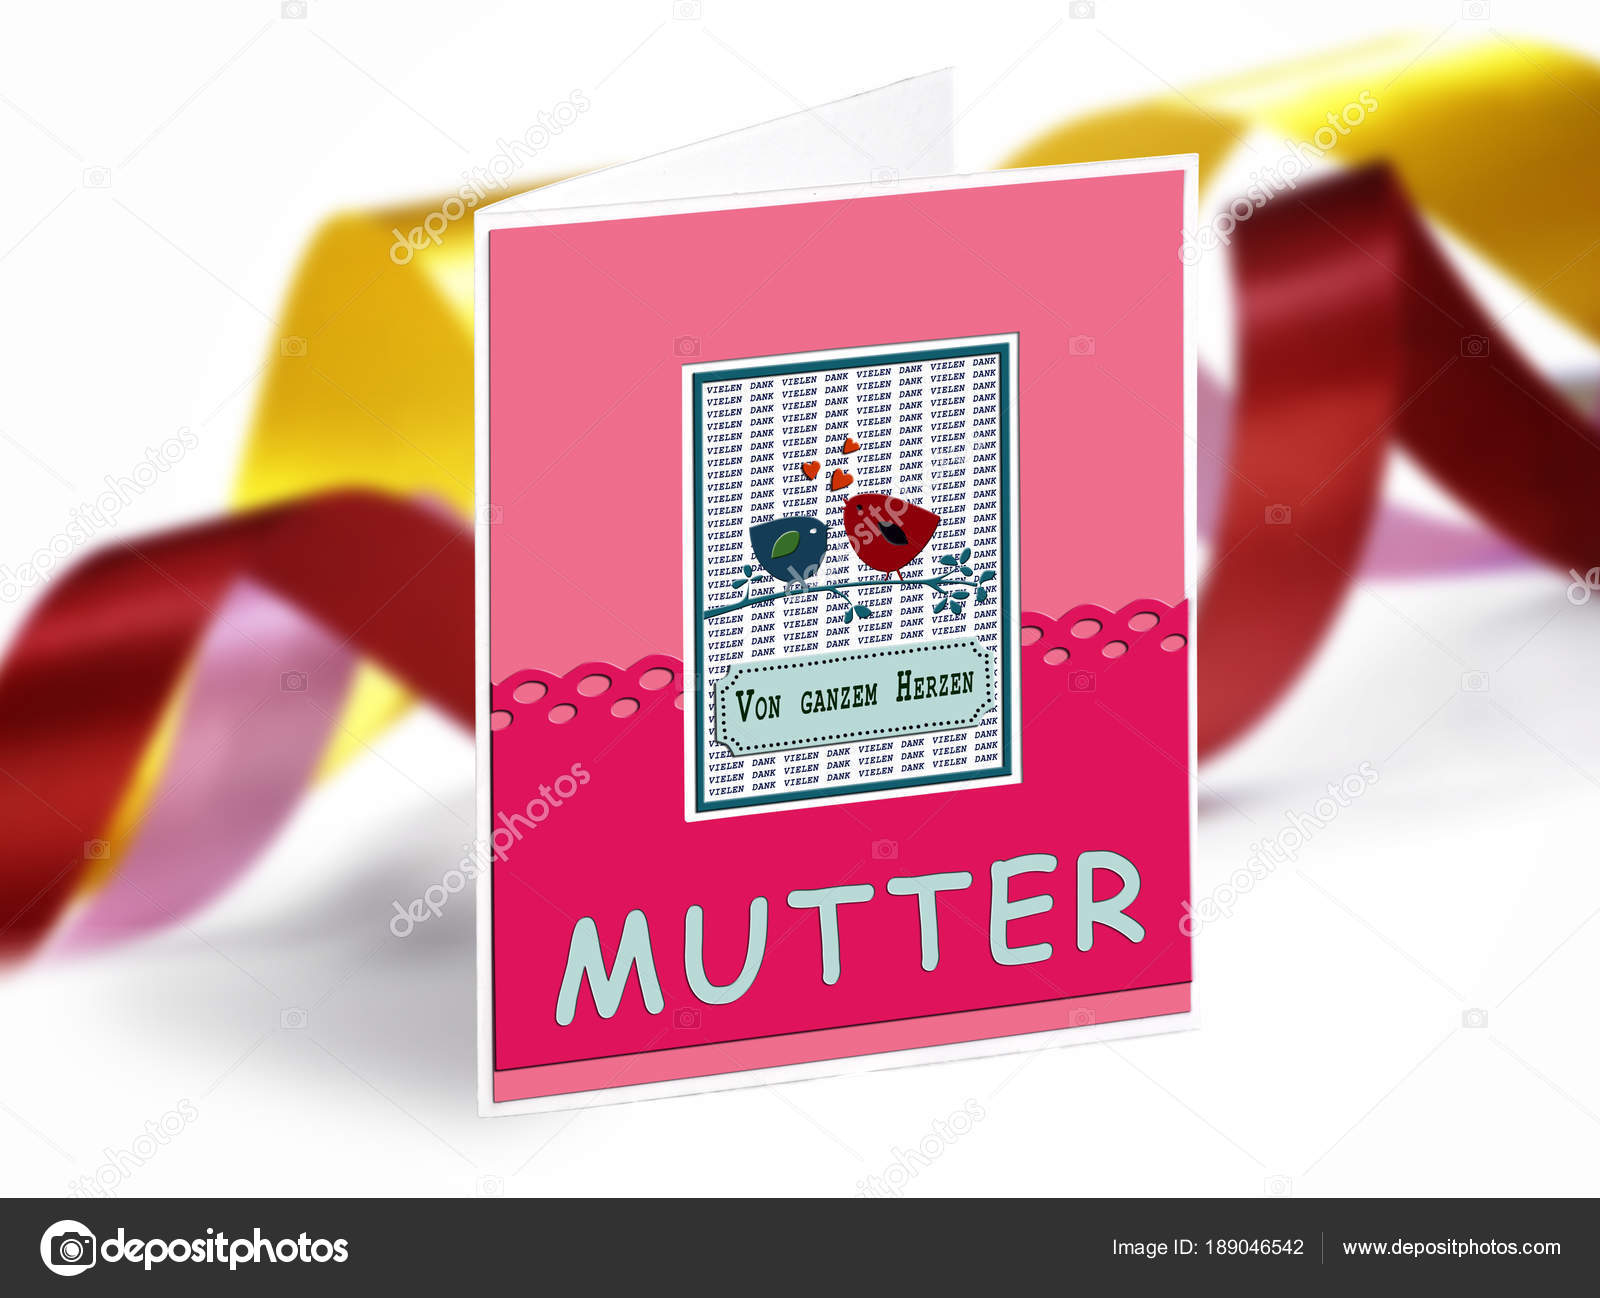 Greetings card for the mother day in deutsch text stock photo greetings card for the mother day in deutsch text stock photo m4hsunfo